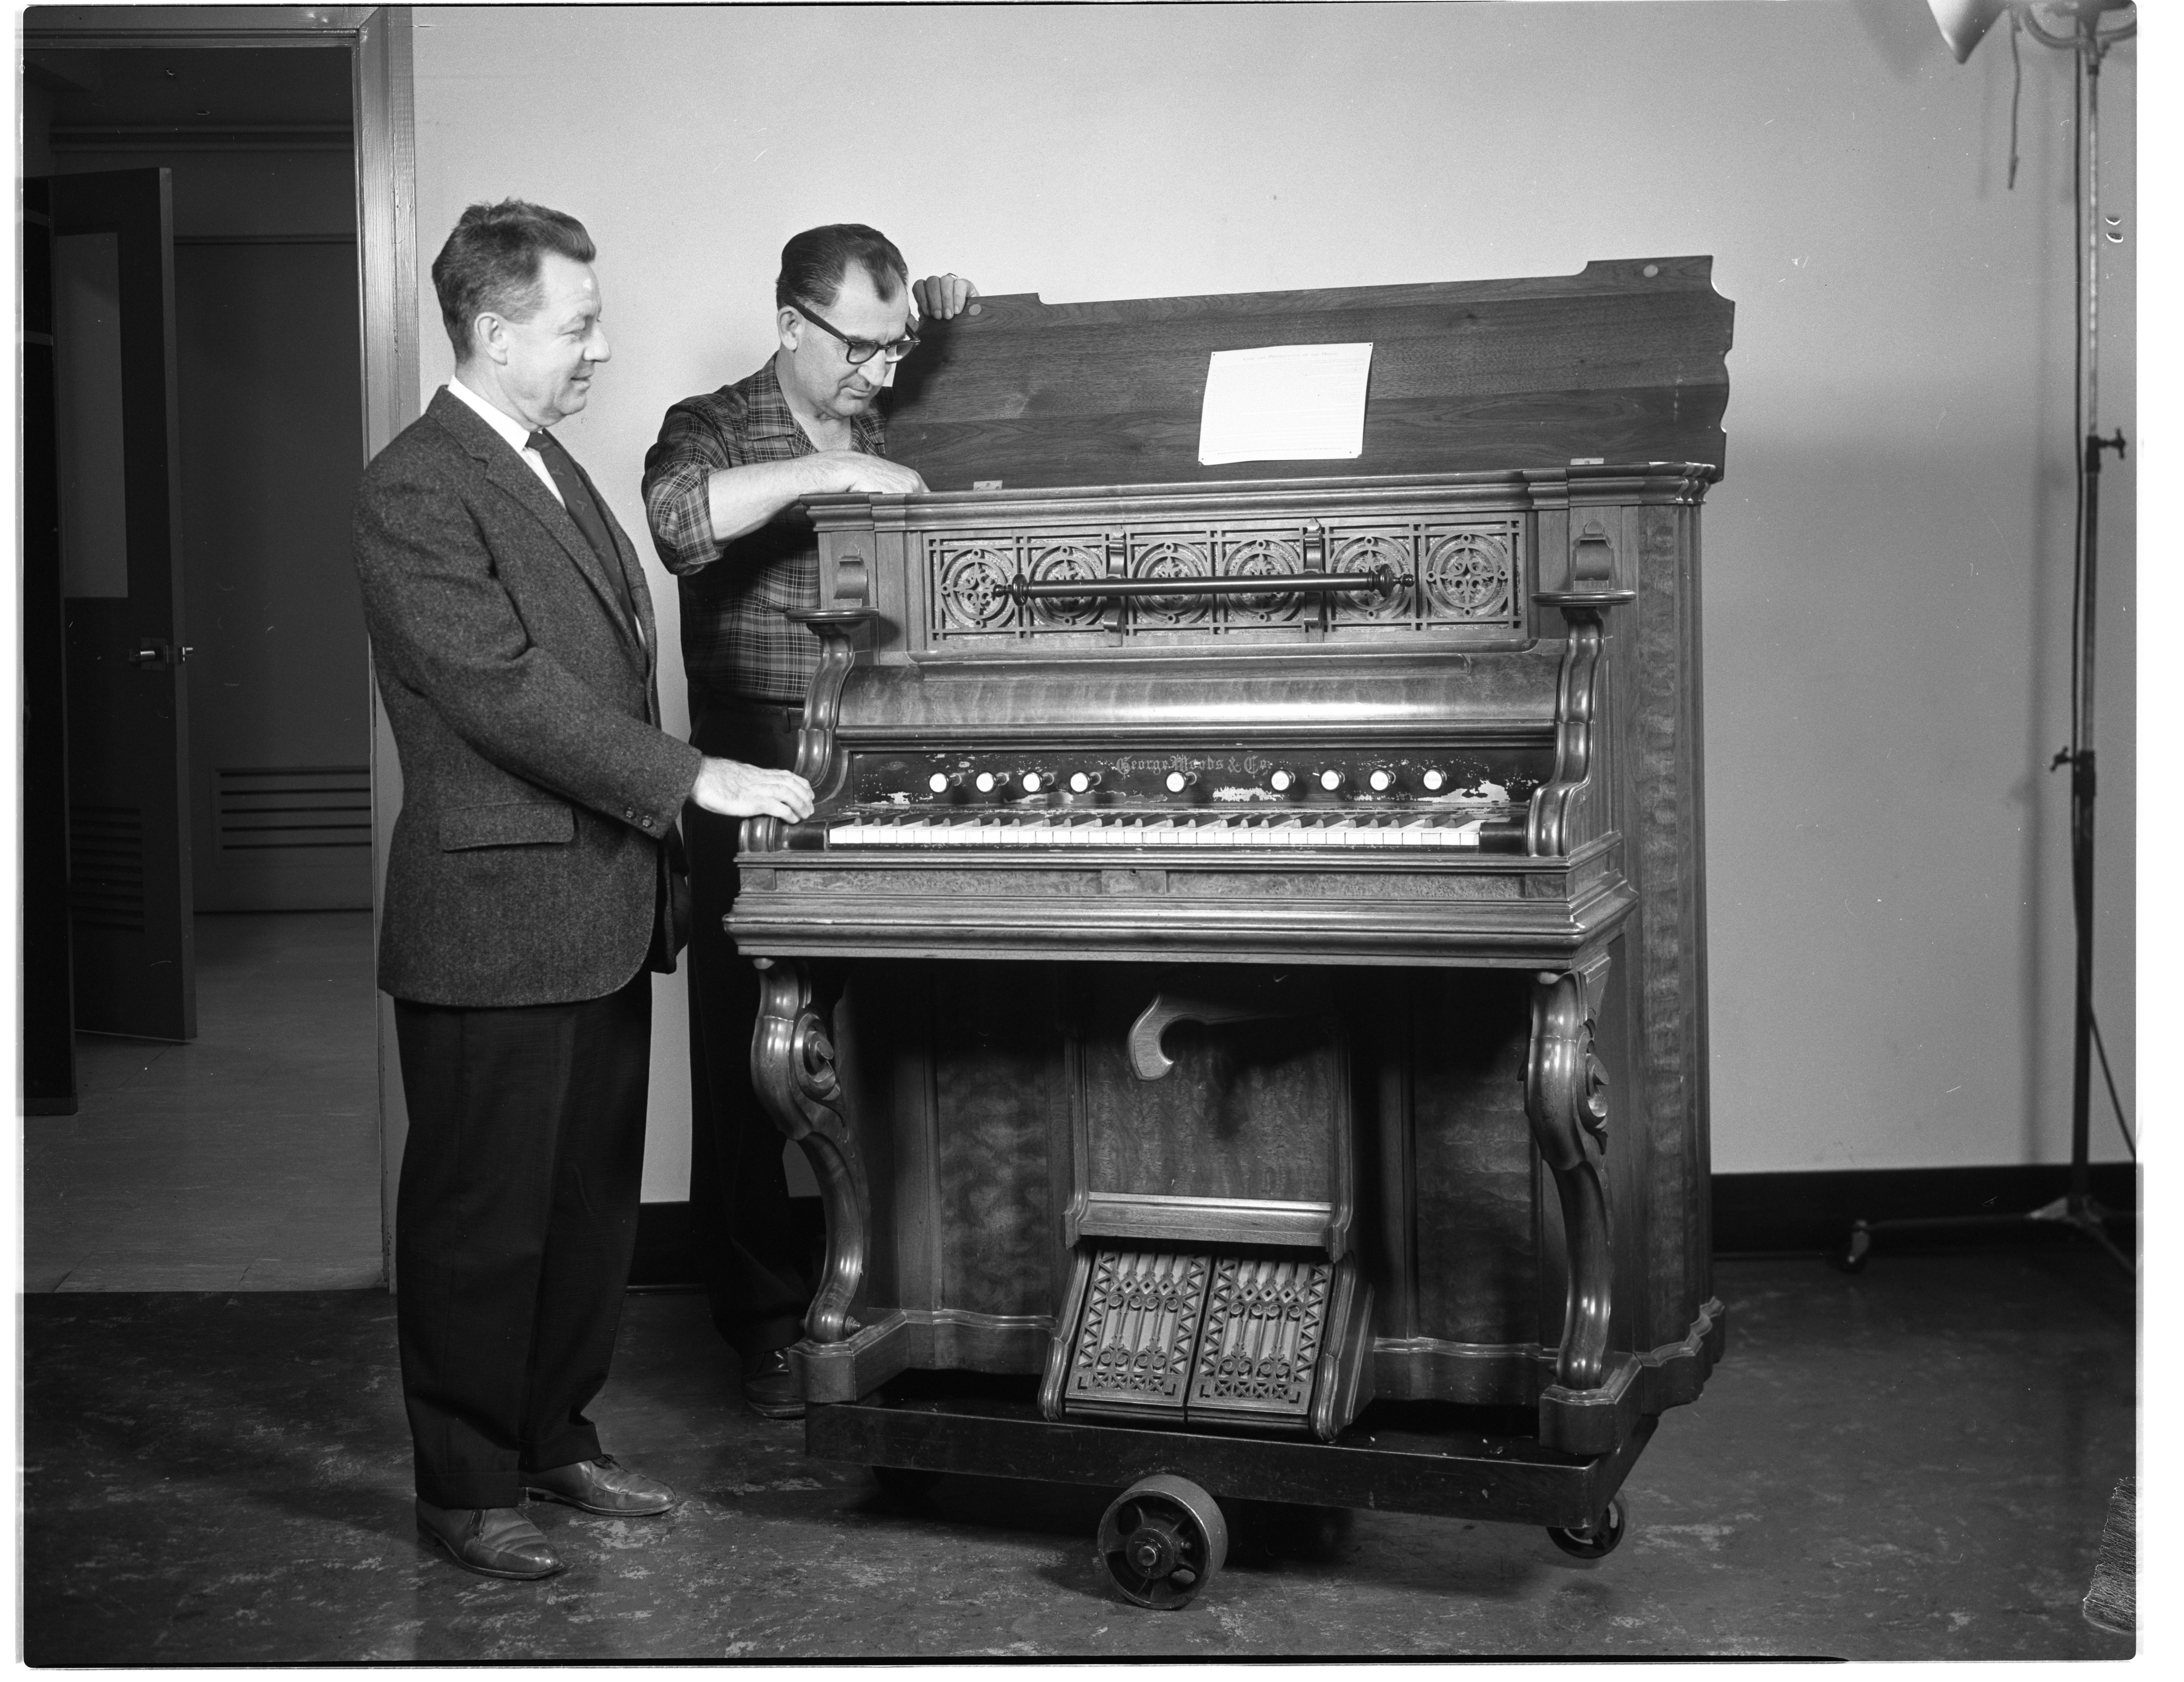 Kiwanis Club Accepts Valuable Woods Pump Organ For Annual Rummage Sale, November 1963 image